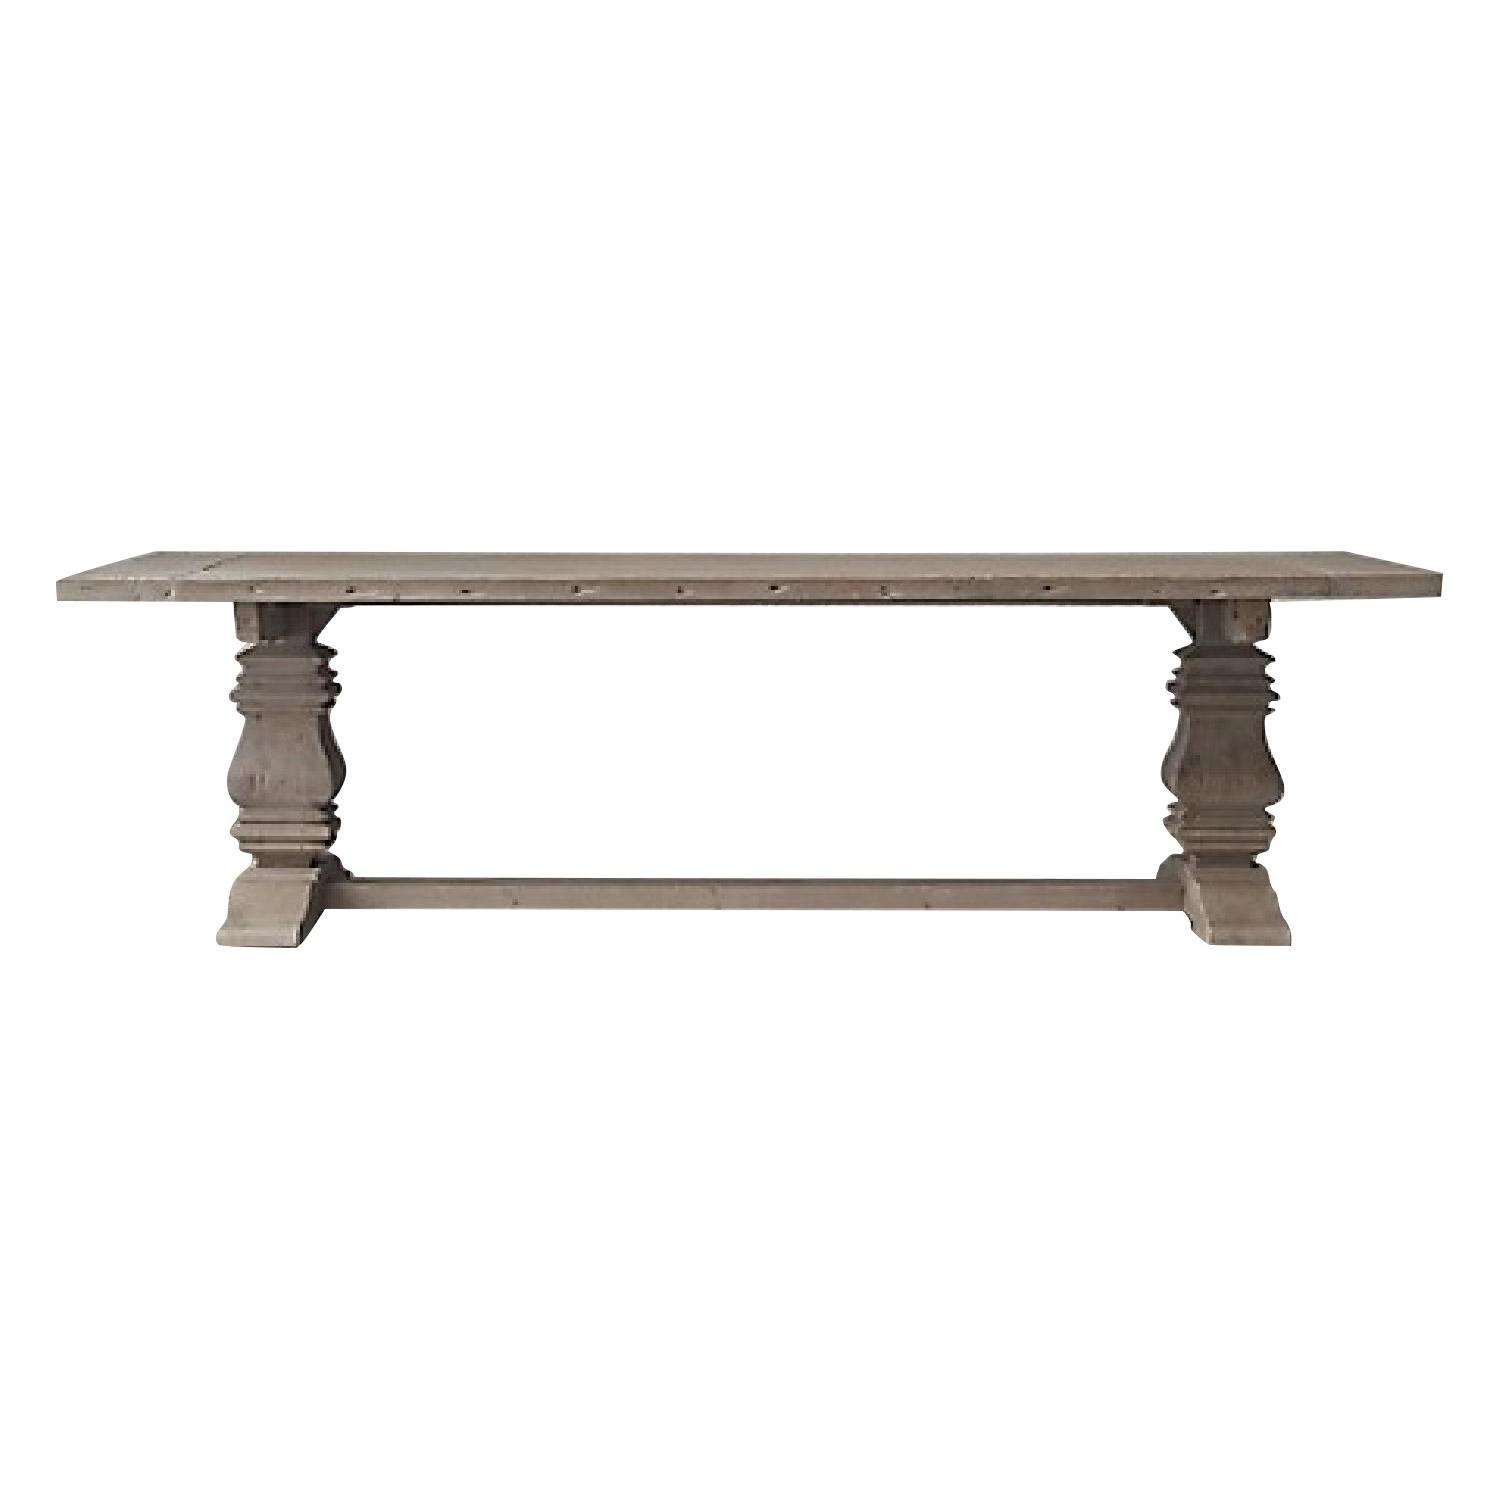 Restoration Hardware Salvaged Wood Trestle Dining Table